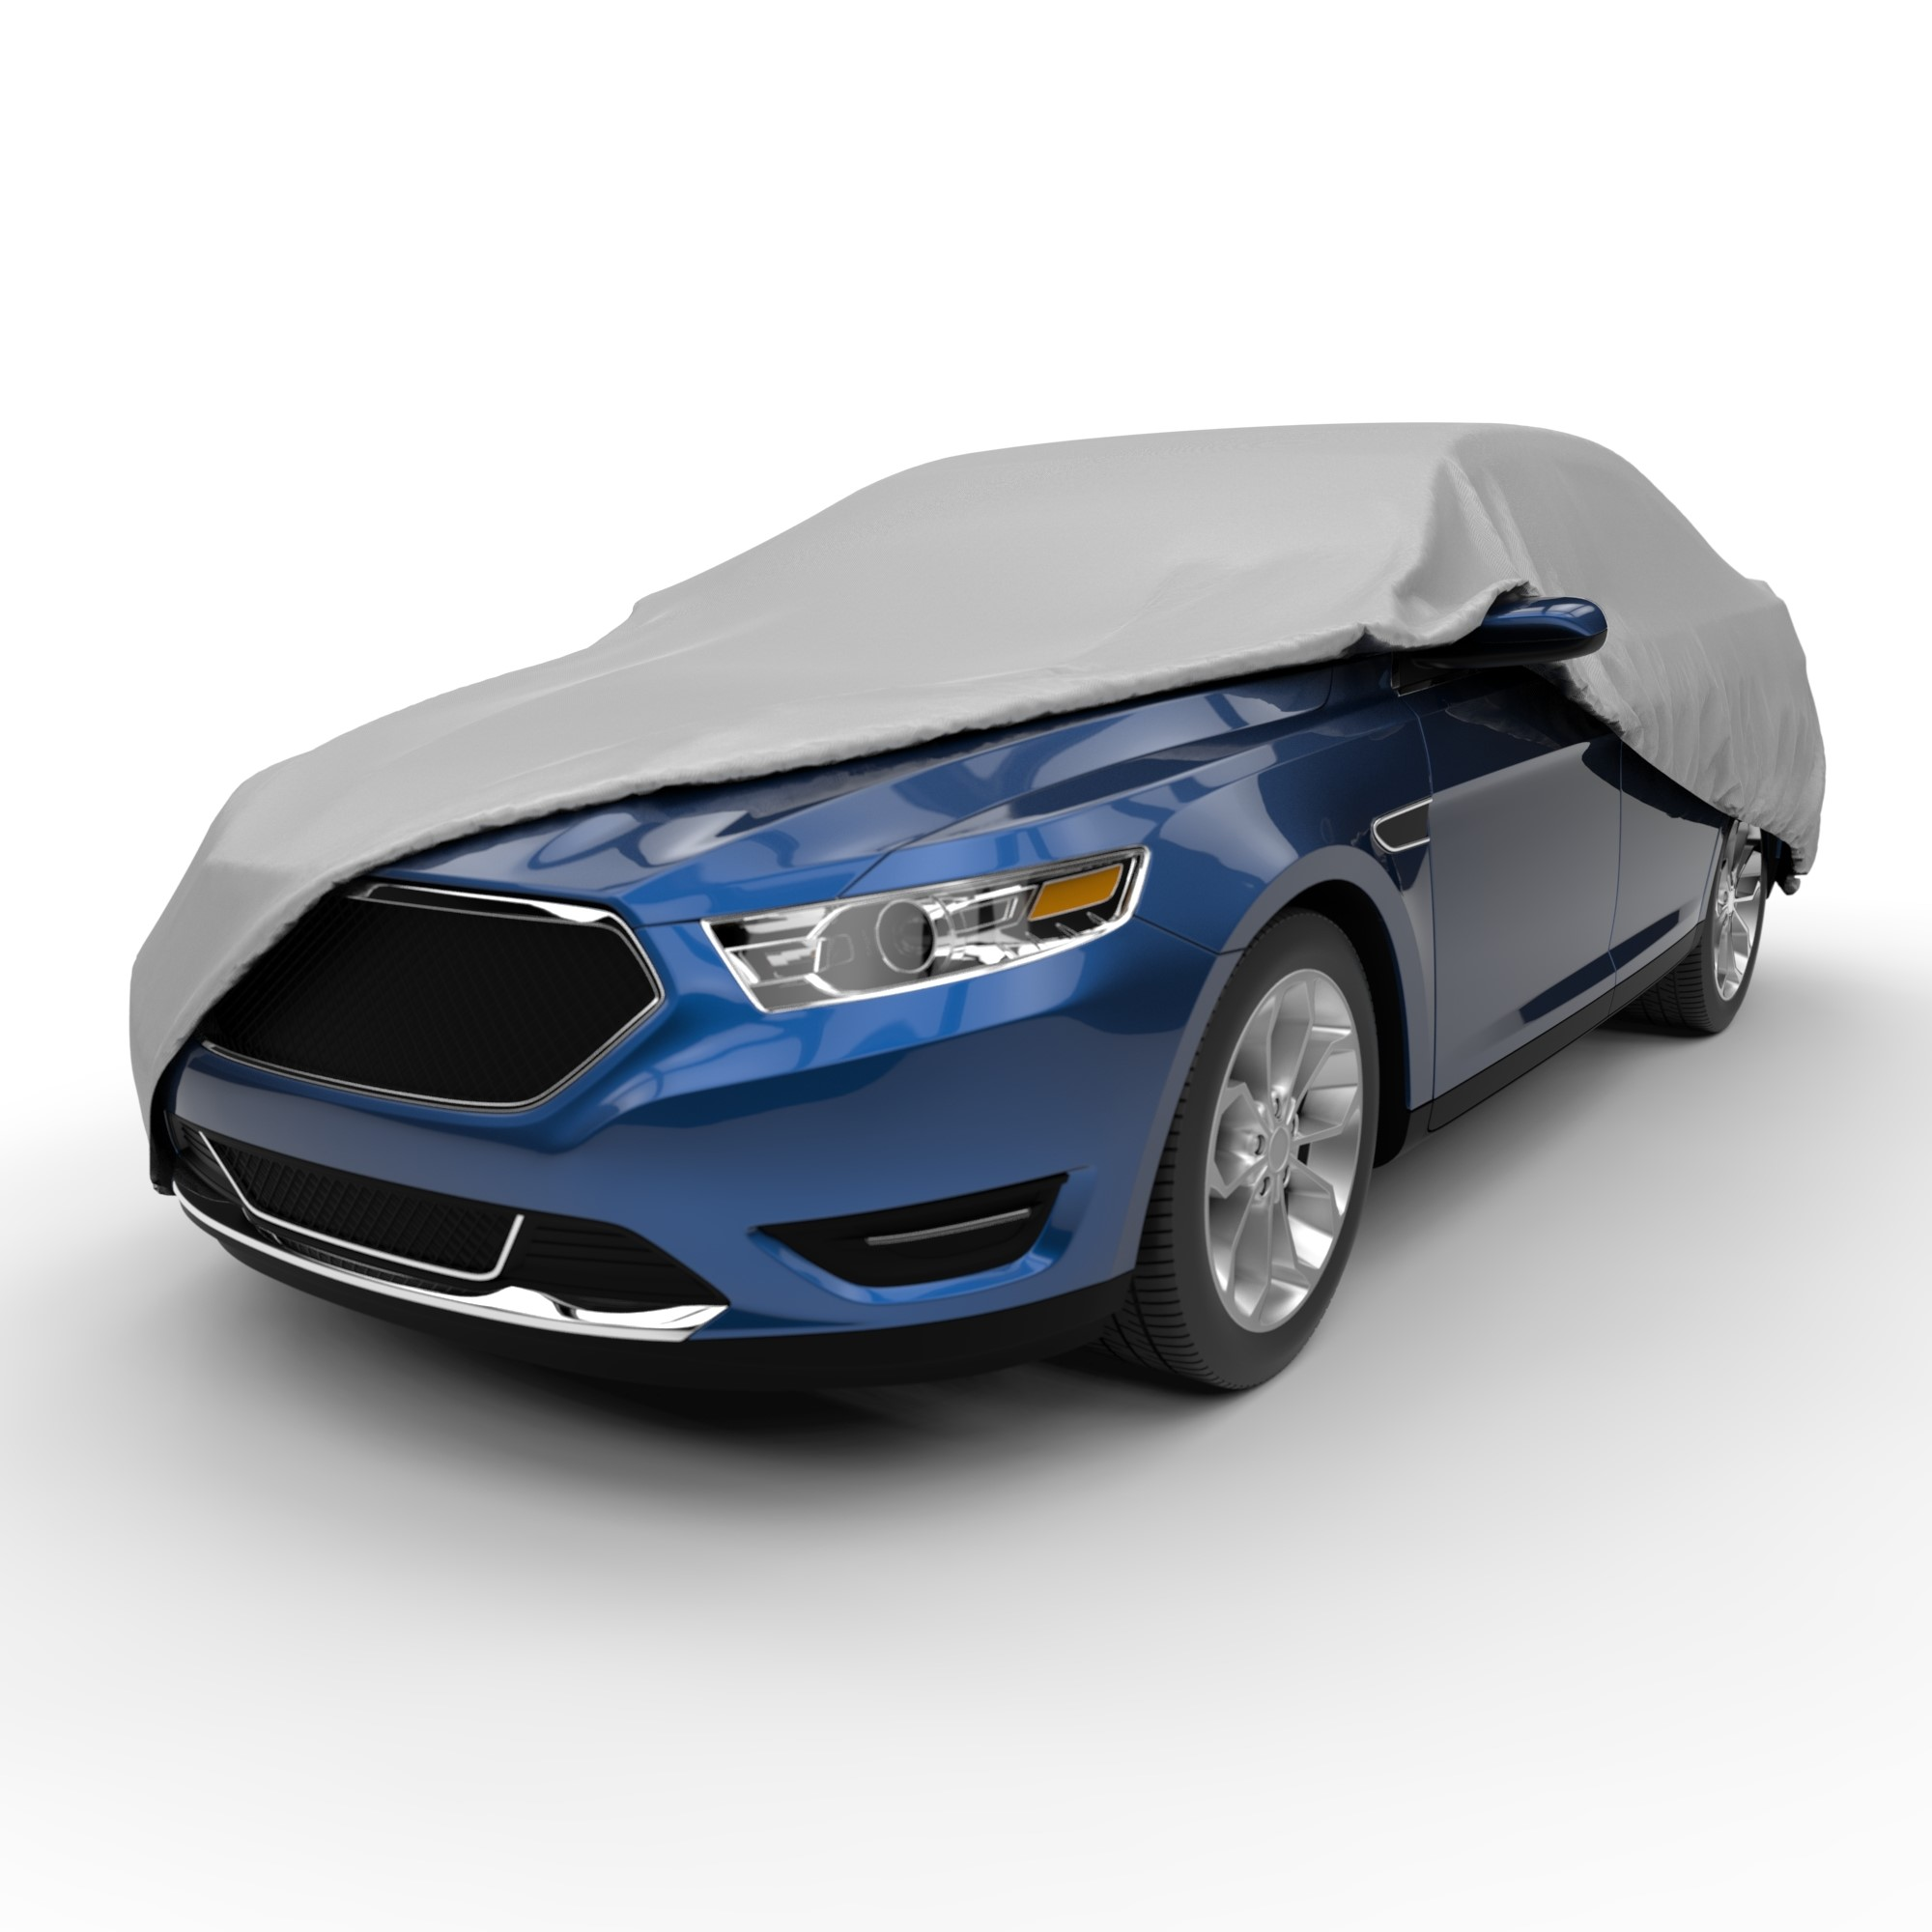 Budge Lite Car Cover, Basic Vehicle Protection, Semi-Custom Fit